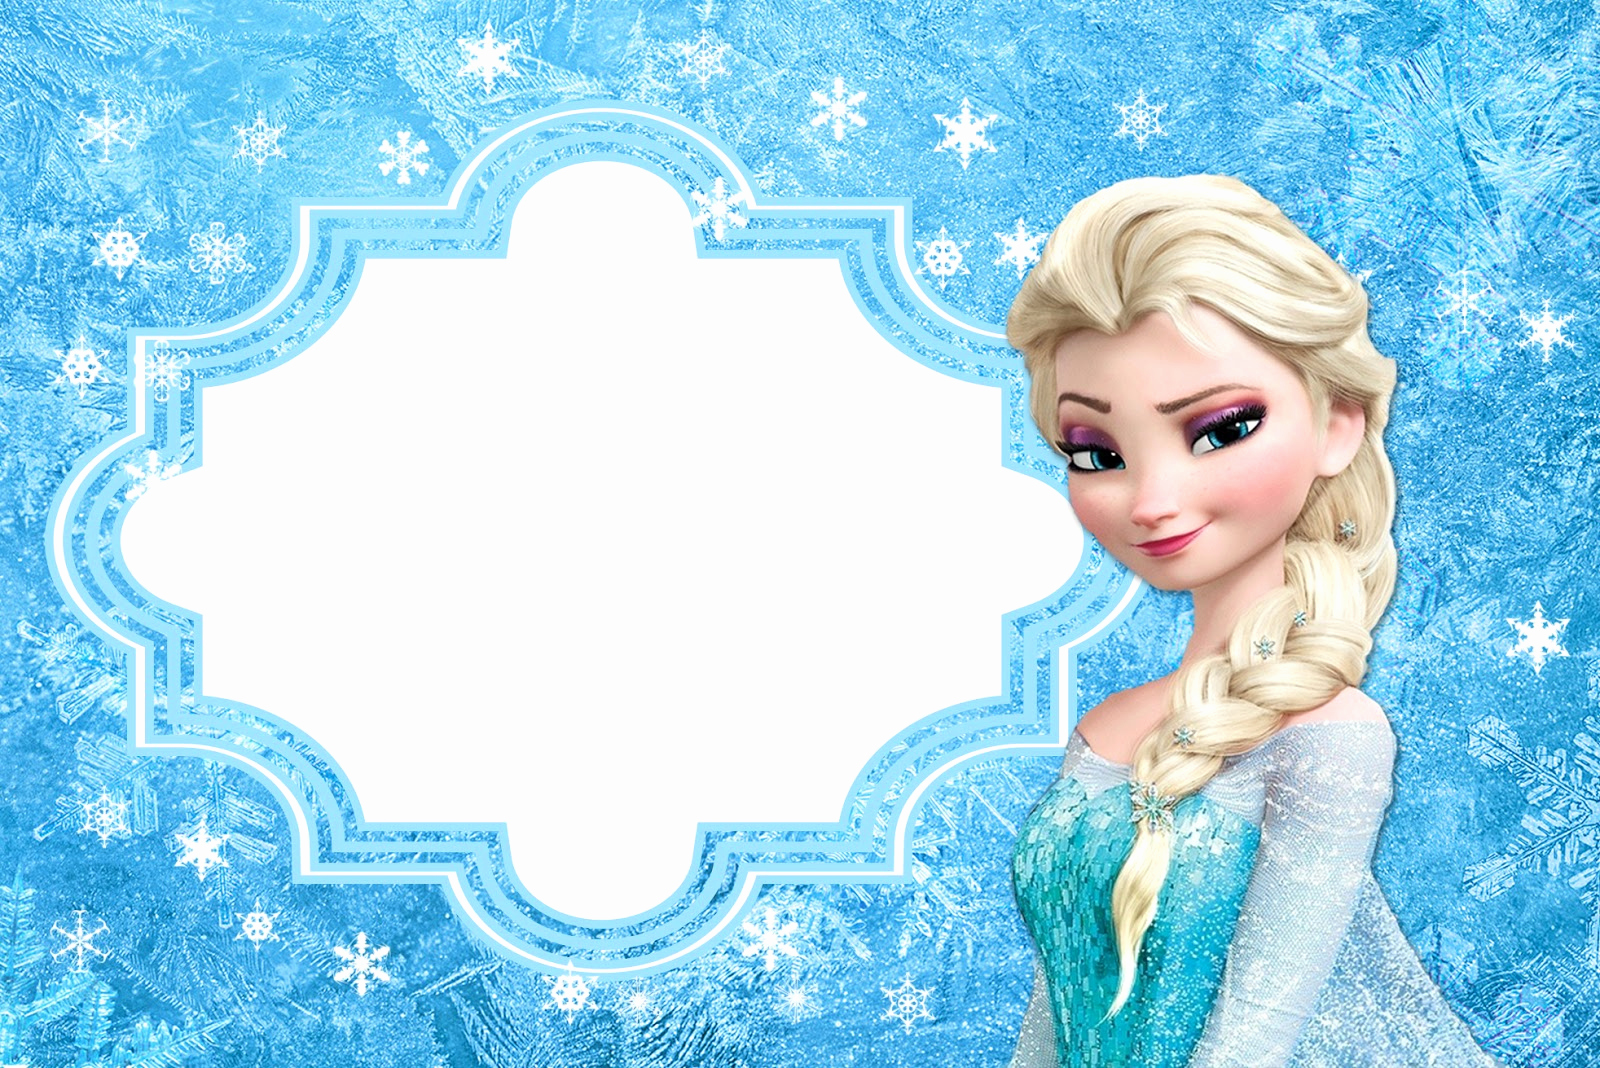 Free Printable Frozen Invitation Template Beautiful Frozen Free Printable Cards or Party Invitations Oh My